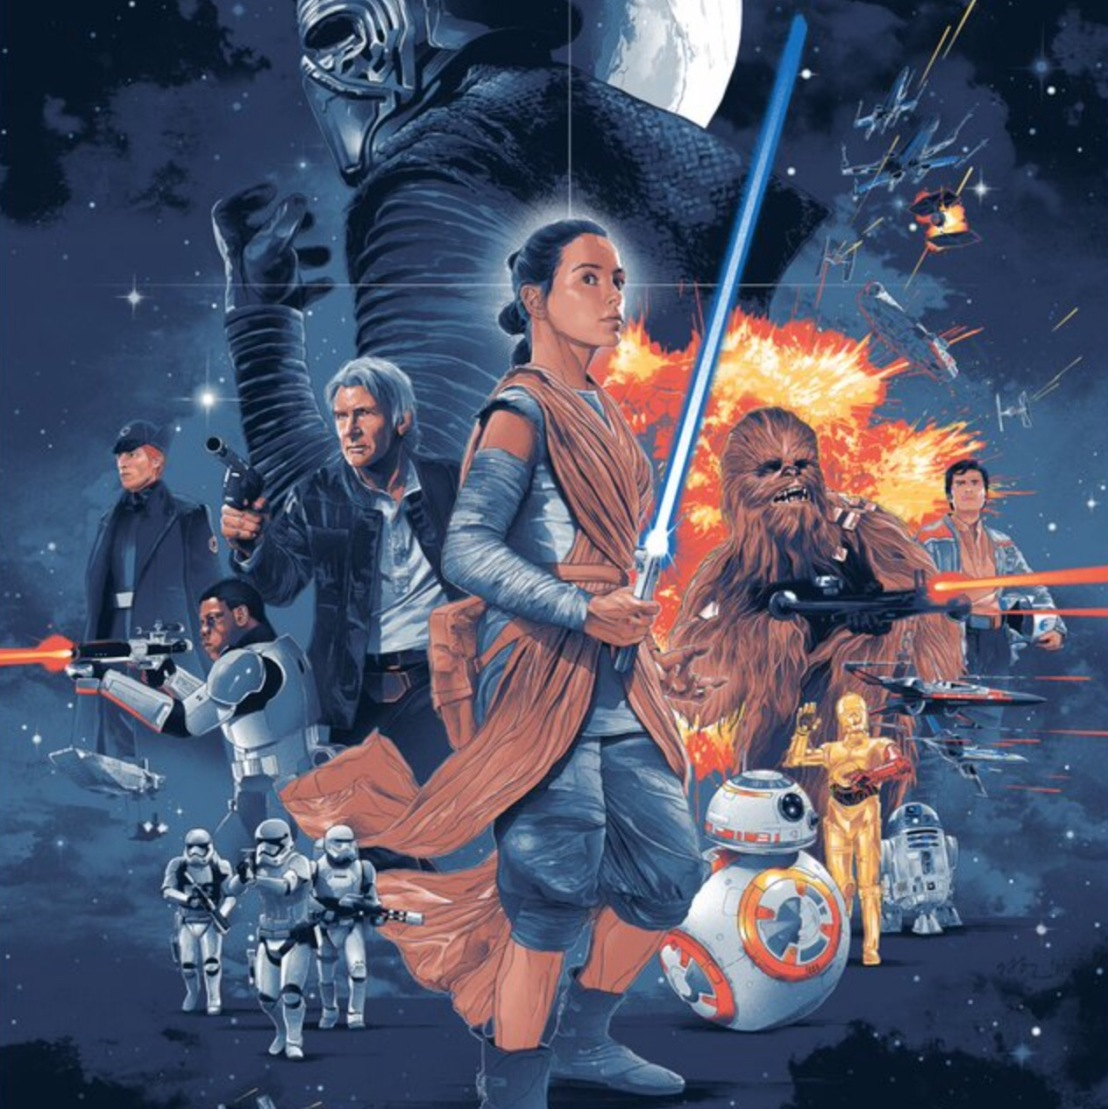 New Officially Licensed 'The Force Awakens' Poster